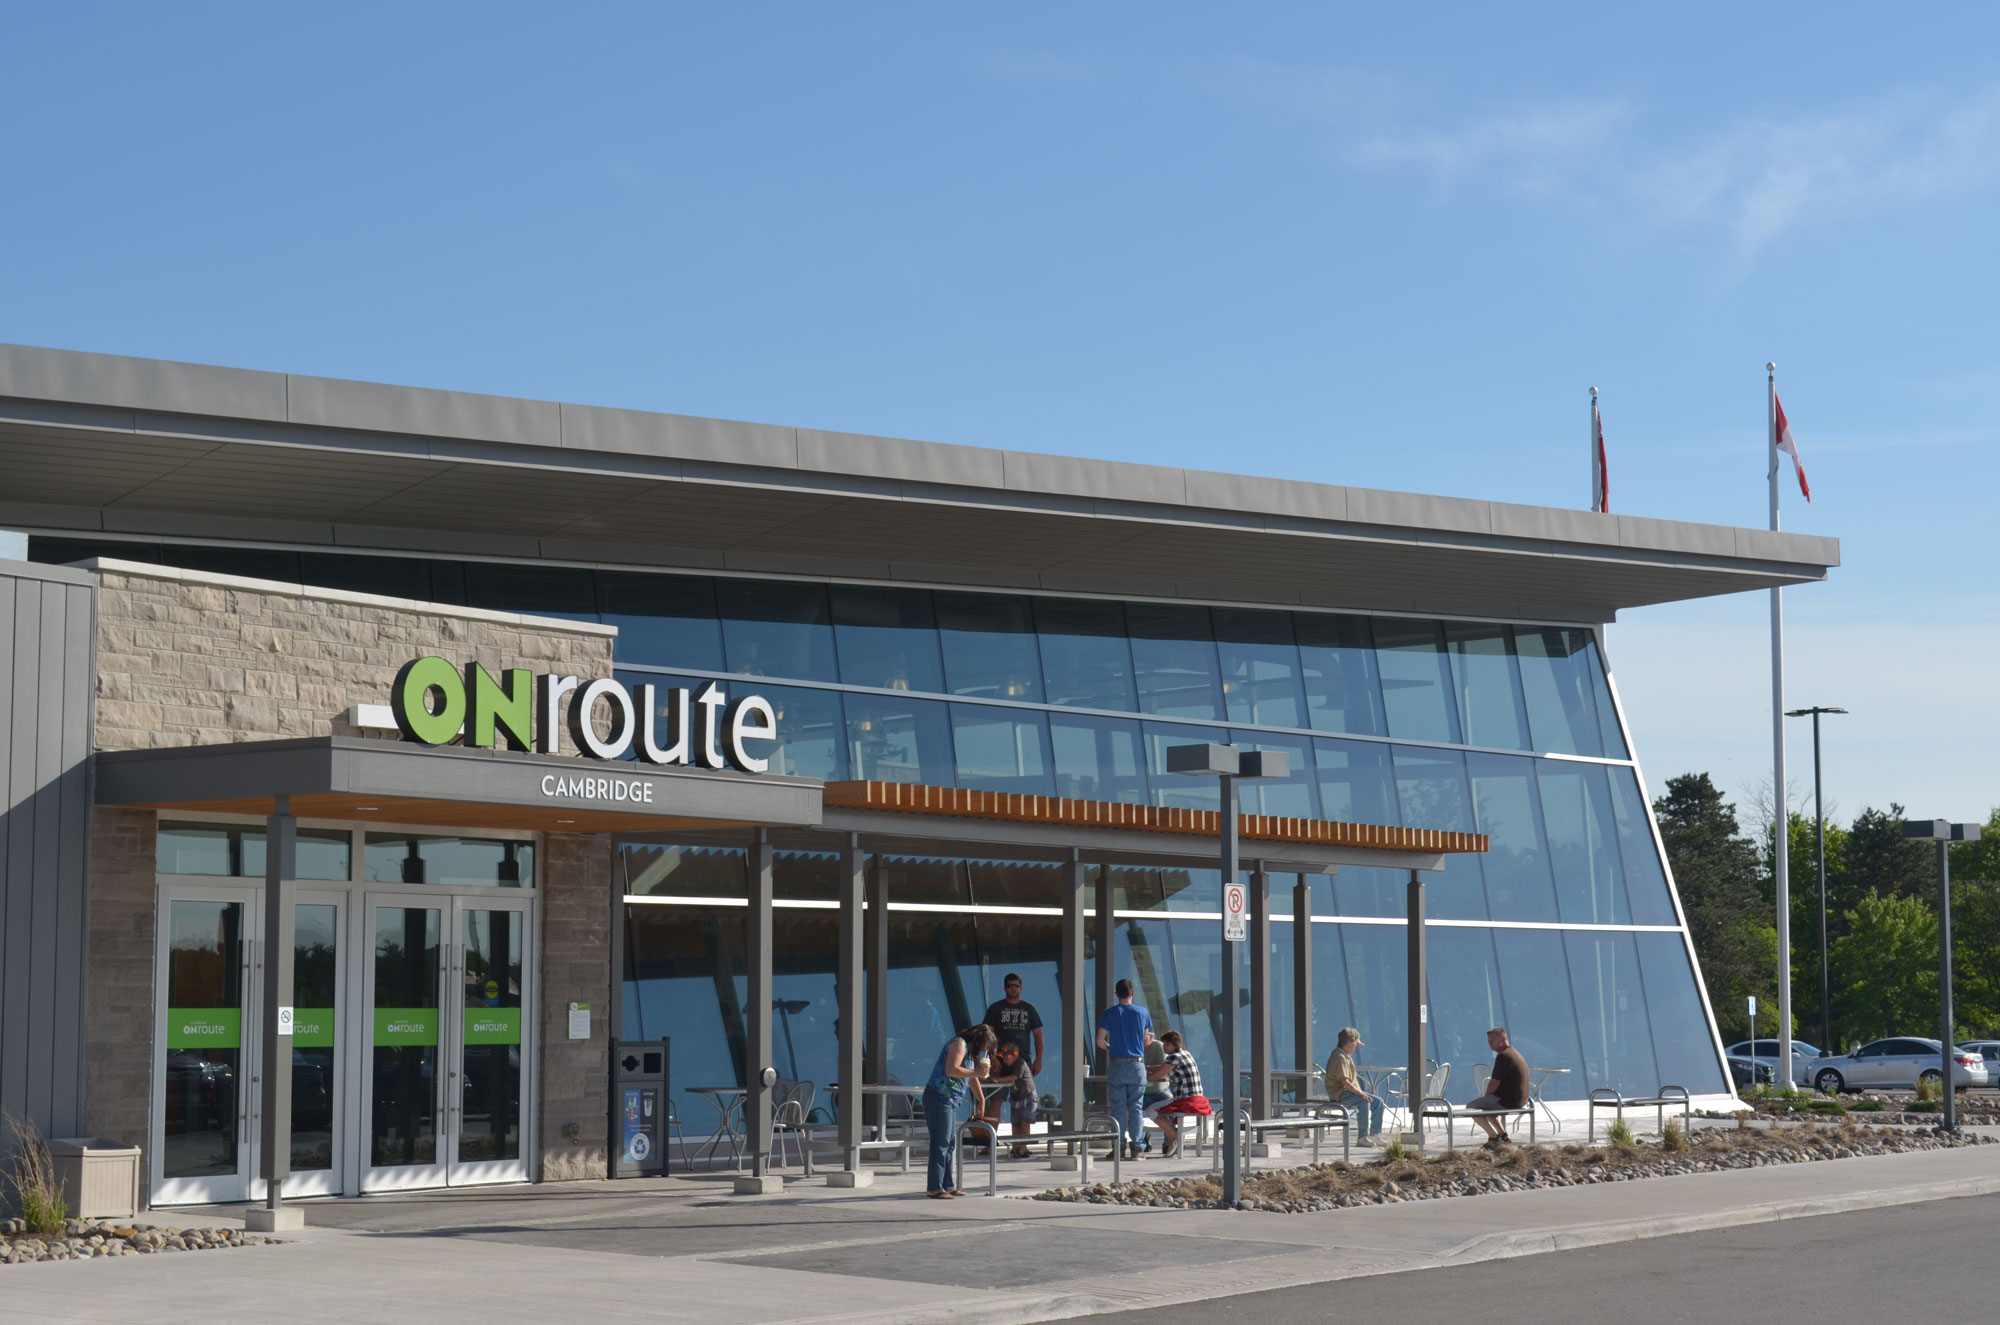 Exterior of ONroute plaza in Cambridge, ON